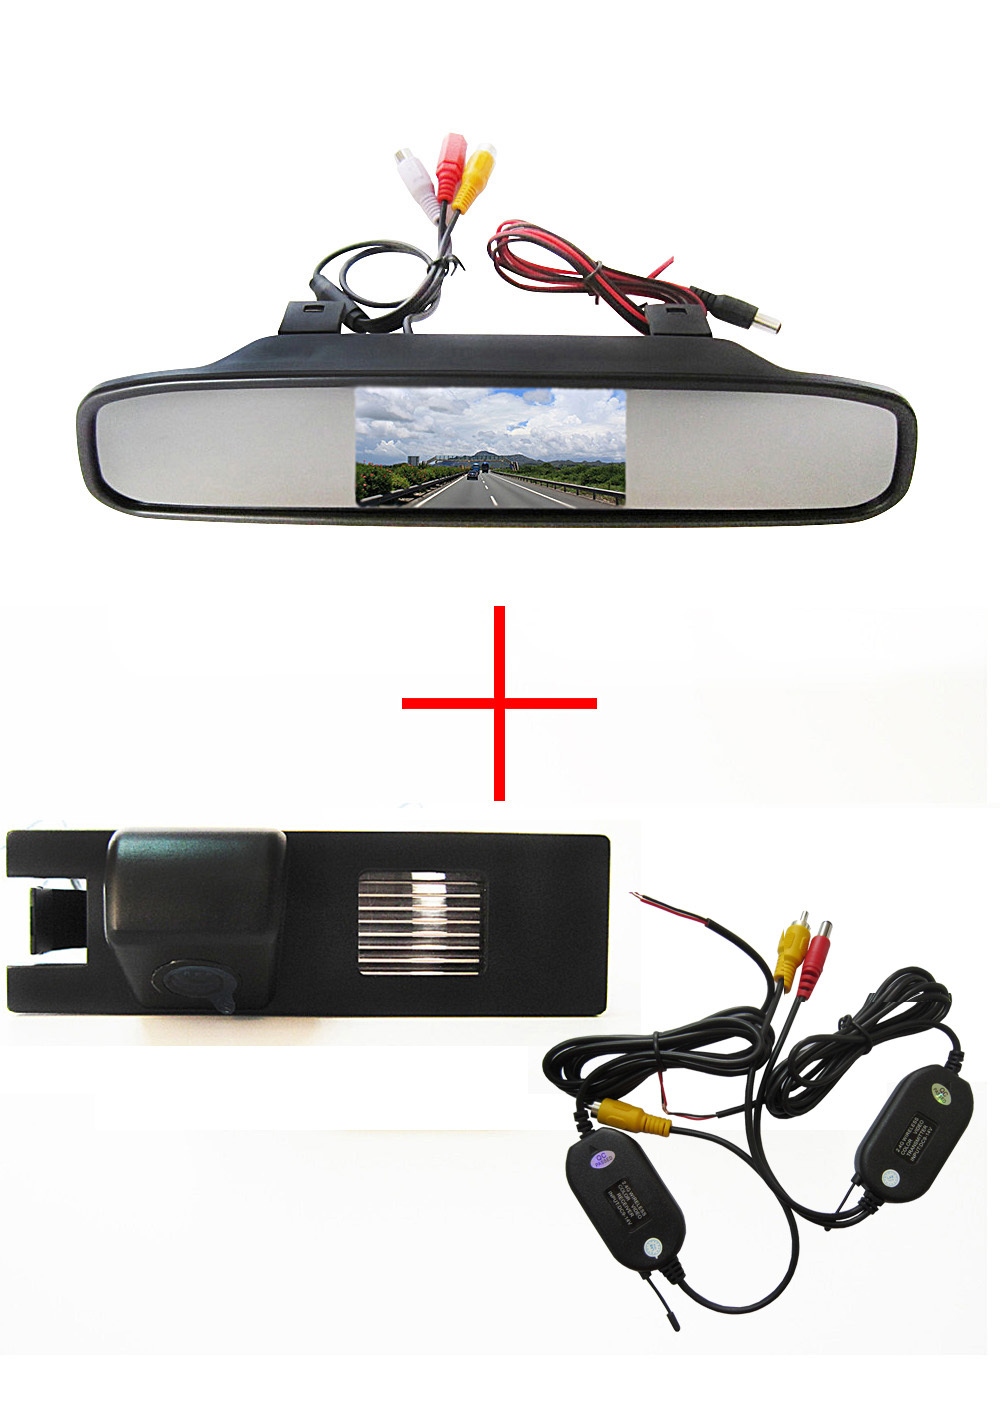 Wireless Car Rear View Camera for OPEL Astra H/Corsa D/Meriva A/Vectra C/Zafira B,FIAT Grande+4.3Inch rearview Mirror Monitor wireless control rgb color interior underdash foot accent ambient light for opel zafira a b c for chevrolet zafira tourer